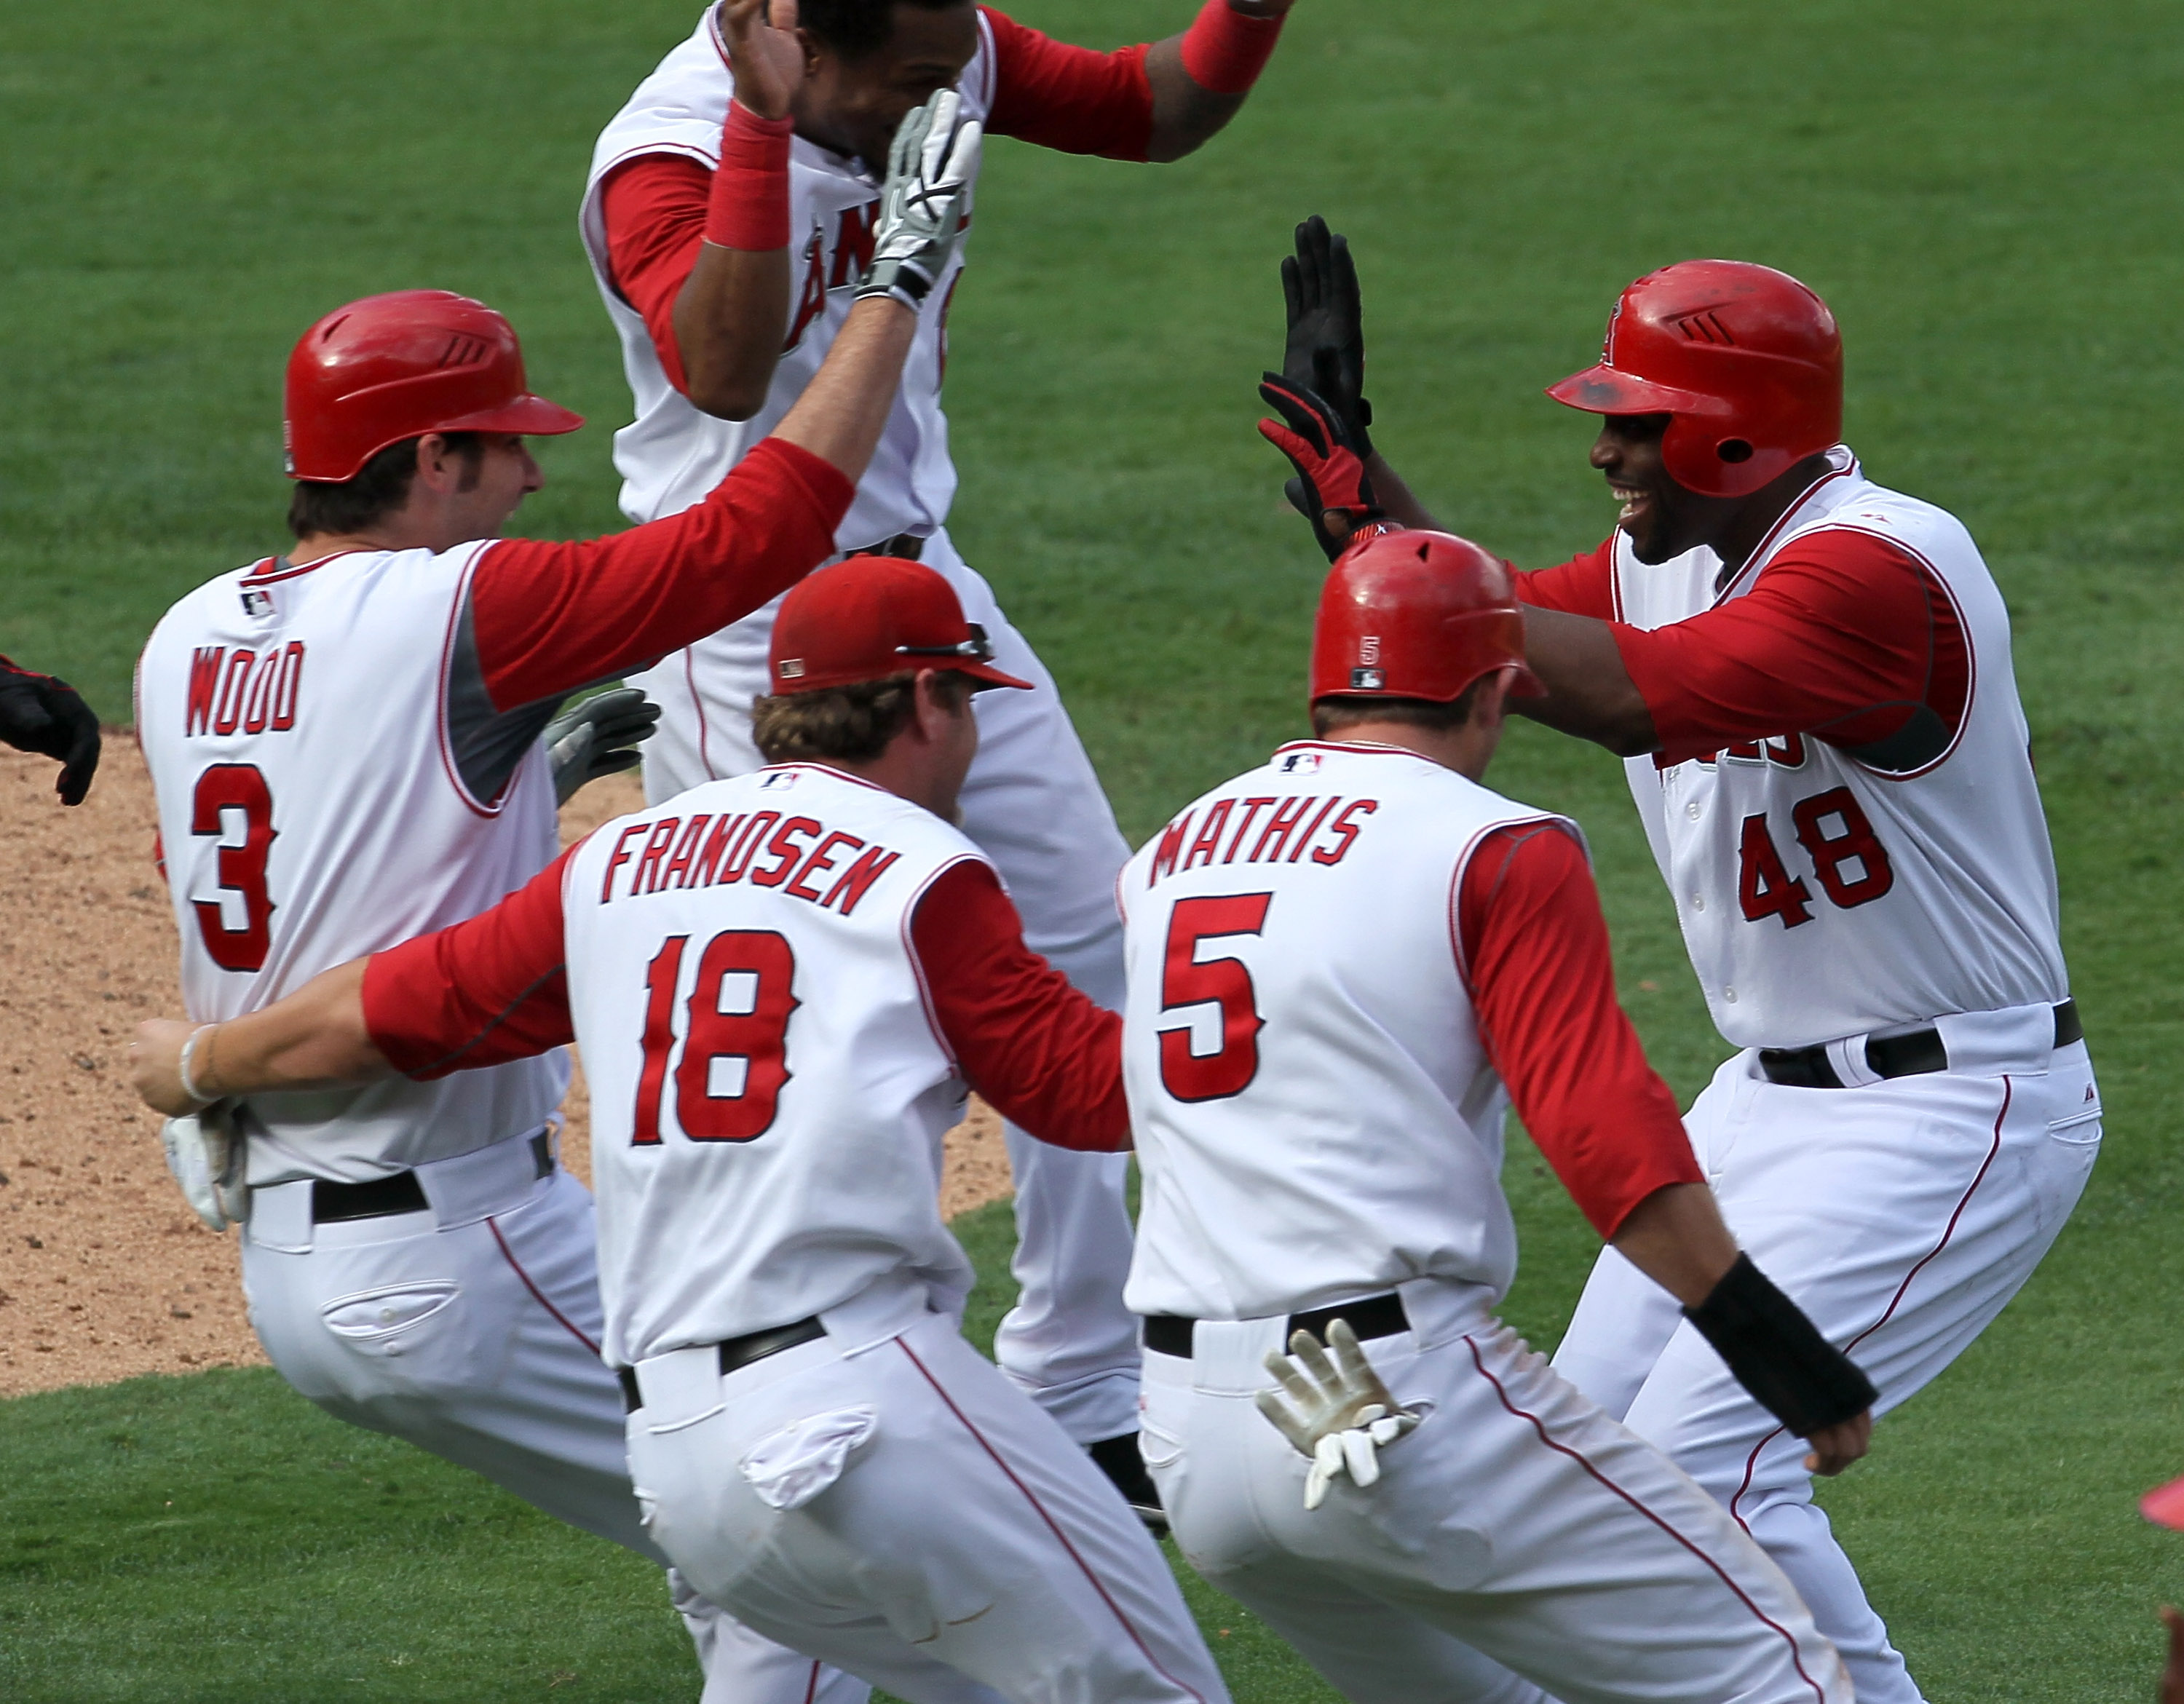 ANAHEIM, CA - SEPTEMBER 29:  Torii Hunter #48 of the Los Angeles Angels of Anaheim is mobbed by Brandon Wood #3, Kevin Frandsen #18, and Jeff Mathis #5 after Hunter's walk off single in the 11th inning ended the game with the Oakland Athletics on Septembe